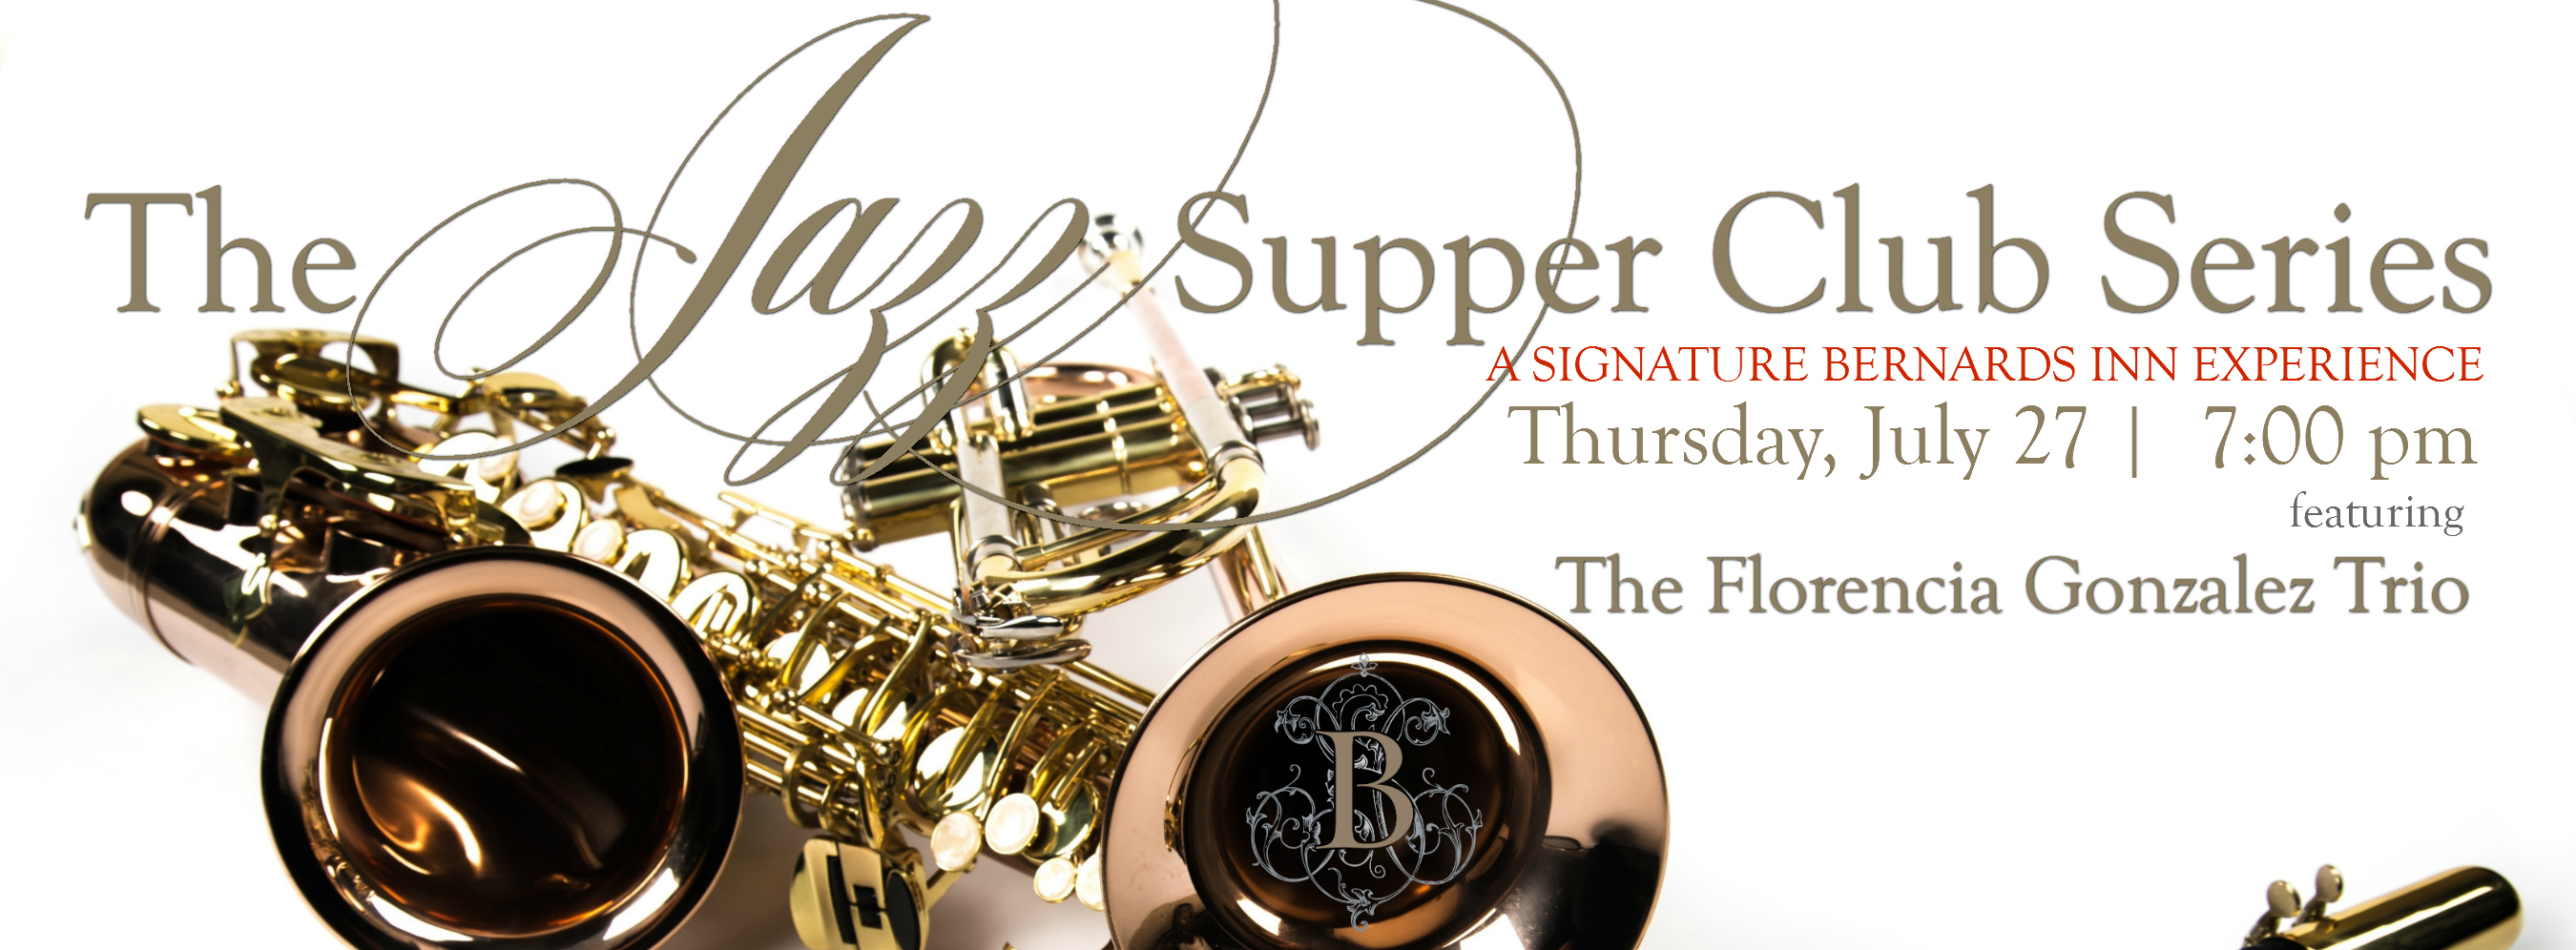 Jazz Supper Club Series